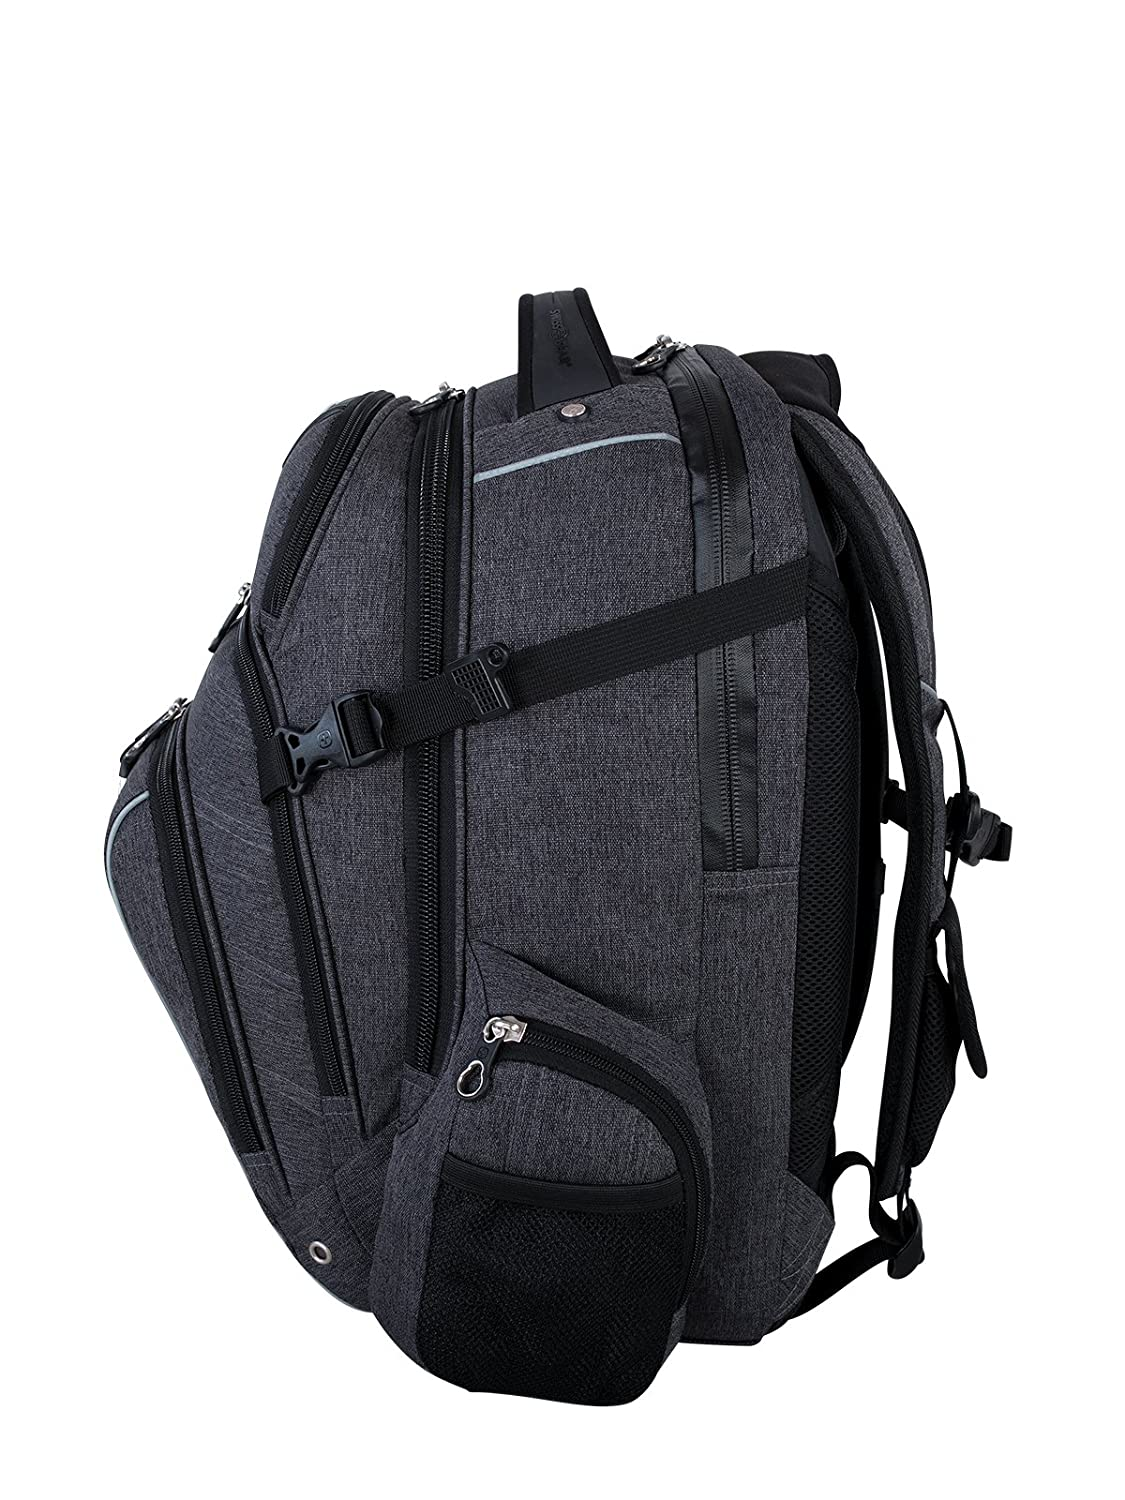 Swiss Gear International Carry-On Size Rainproof Backpack for Laptop Fits 15.6-Inch to 17.3-Inch Laptop Black